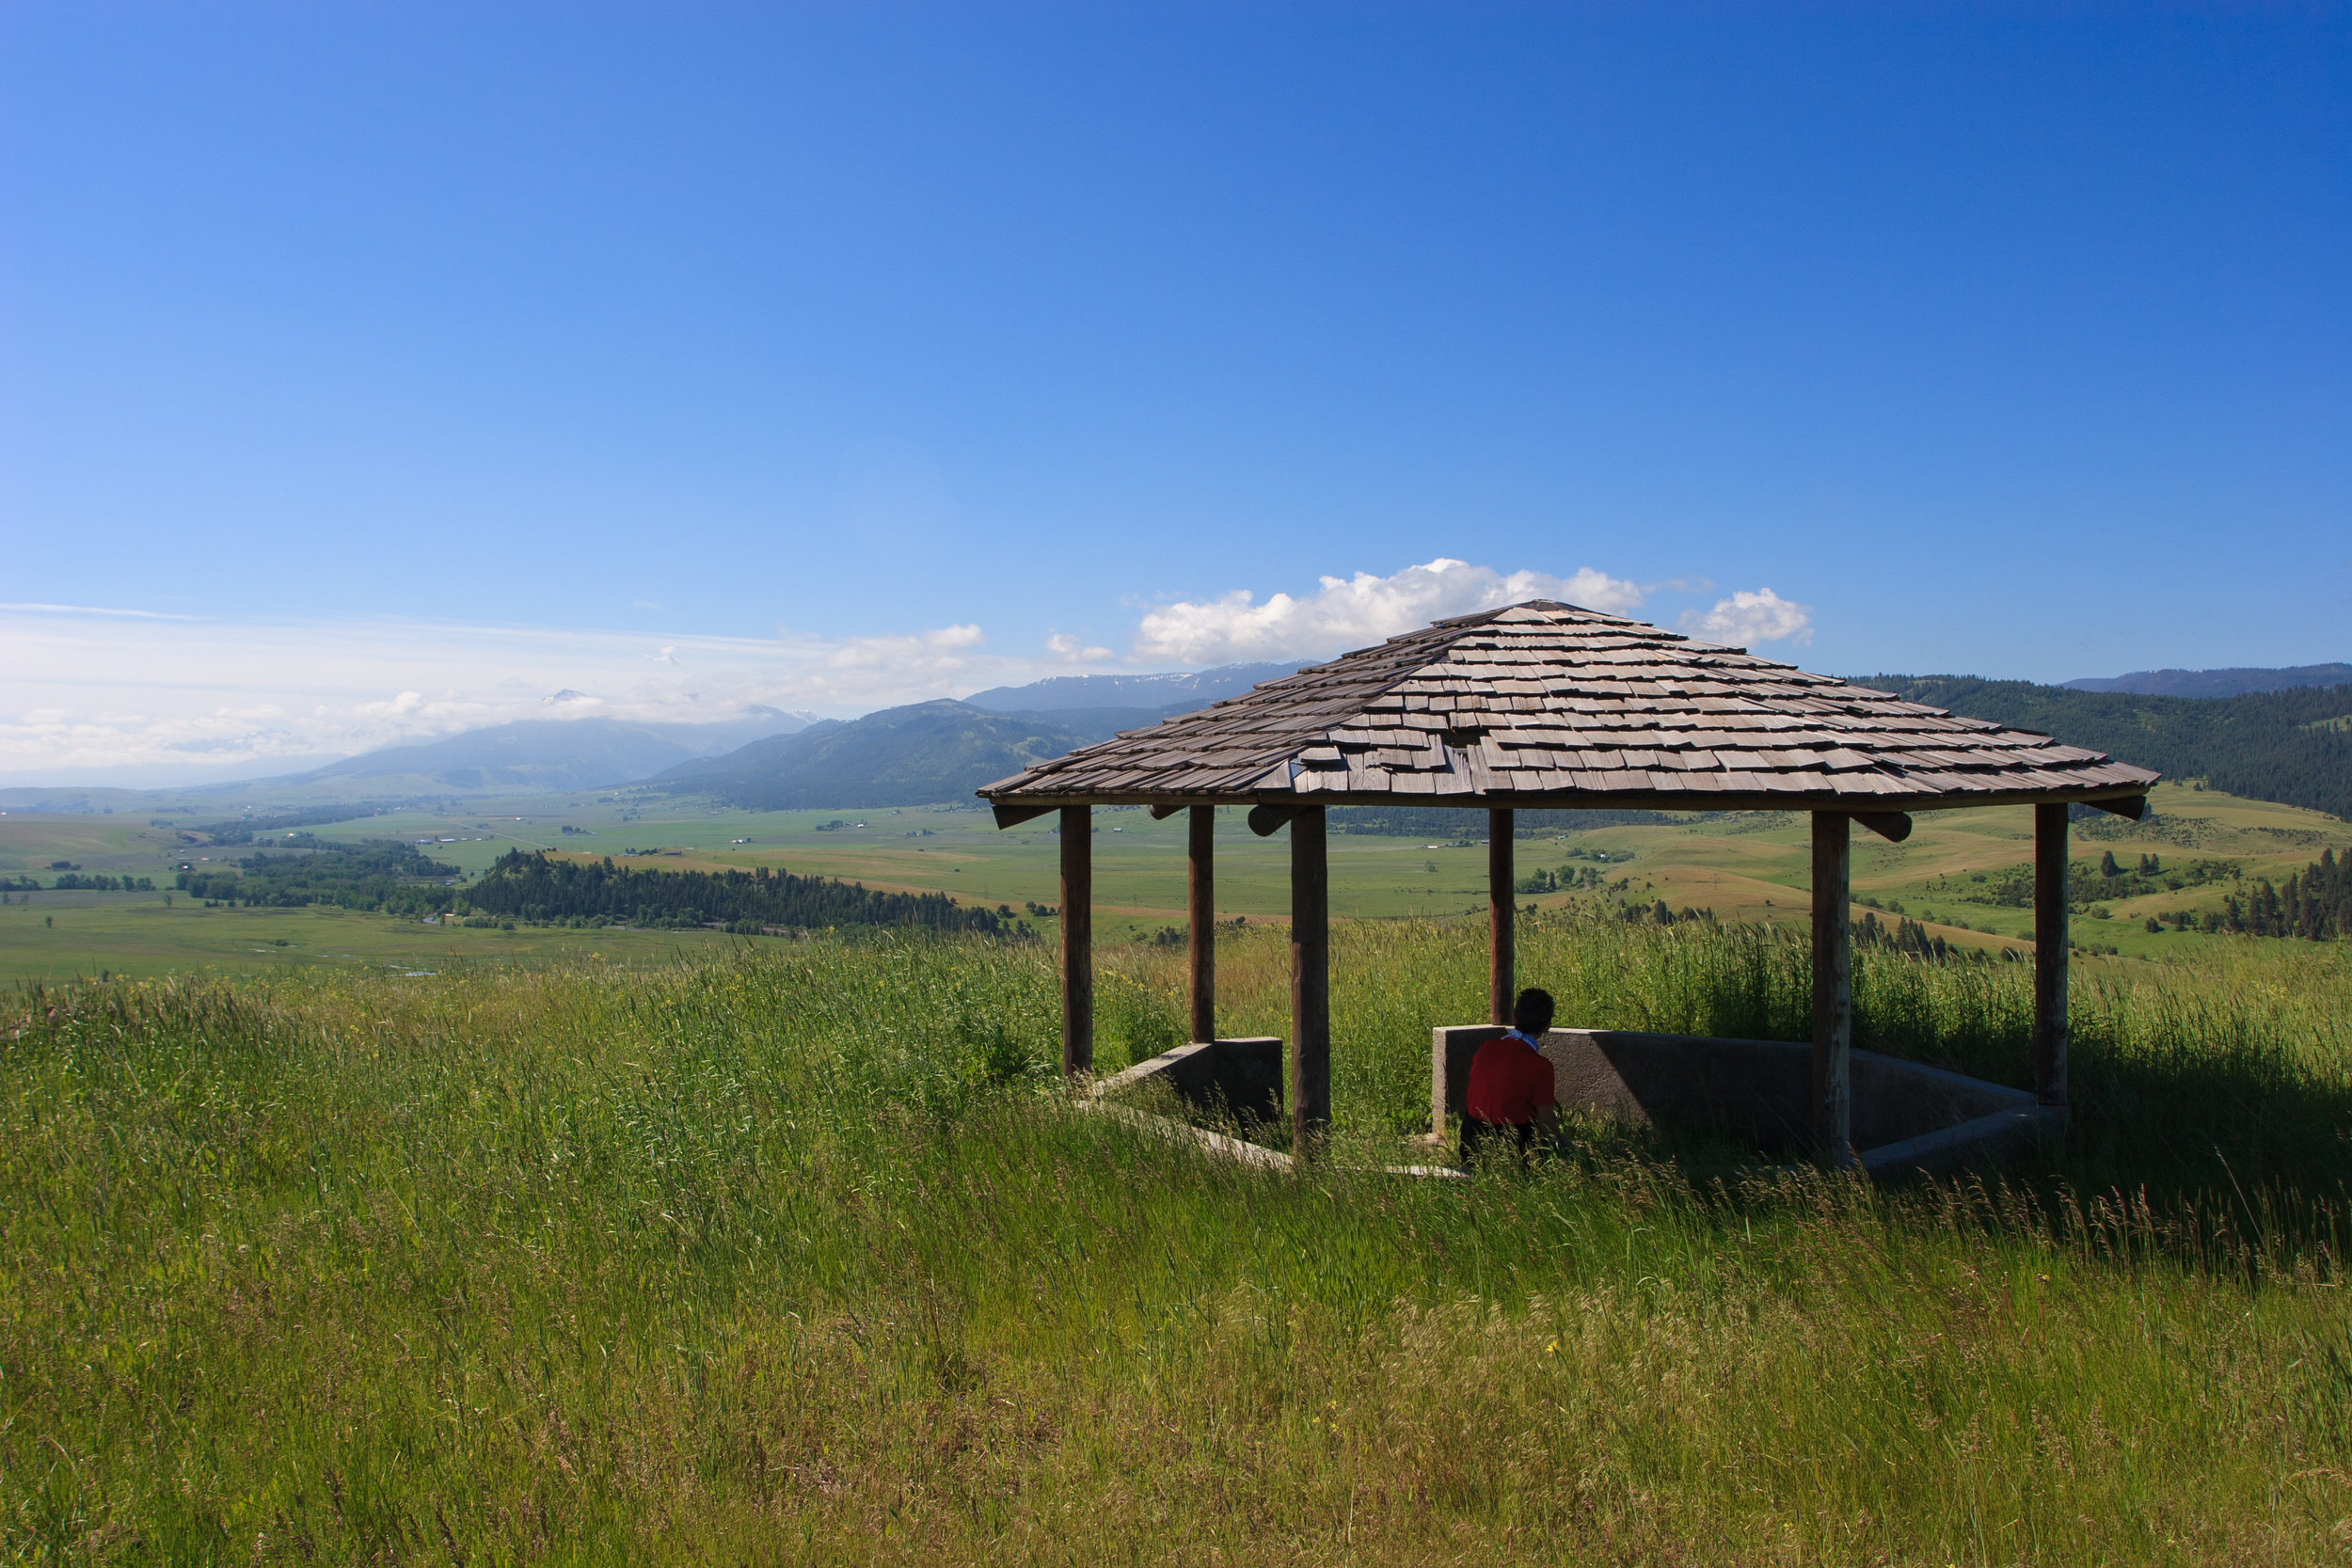 A visitor rests in the gazebo overlooking the Wallowa Valley